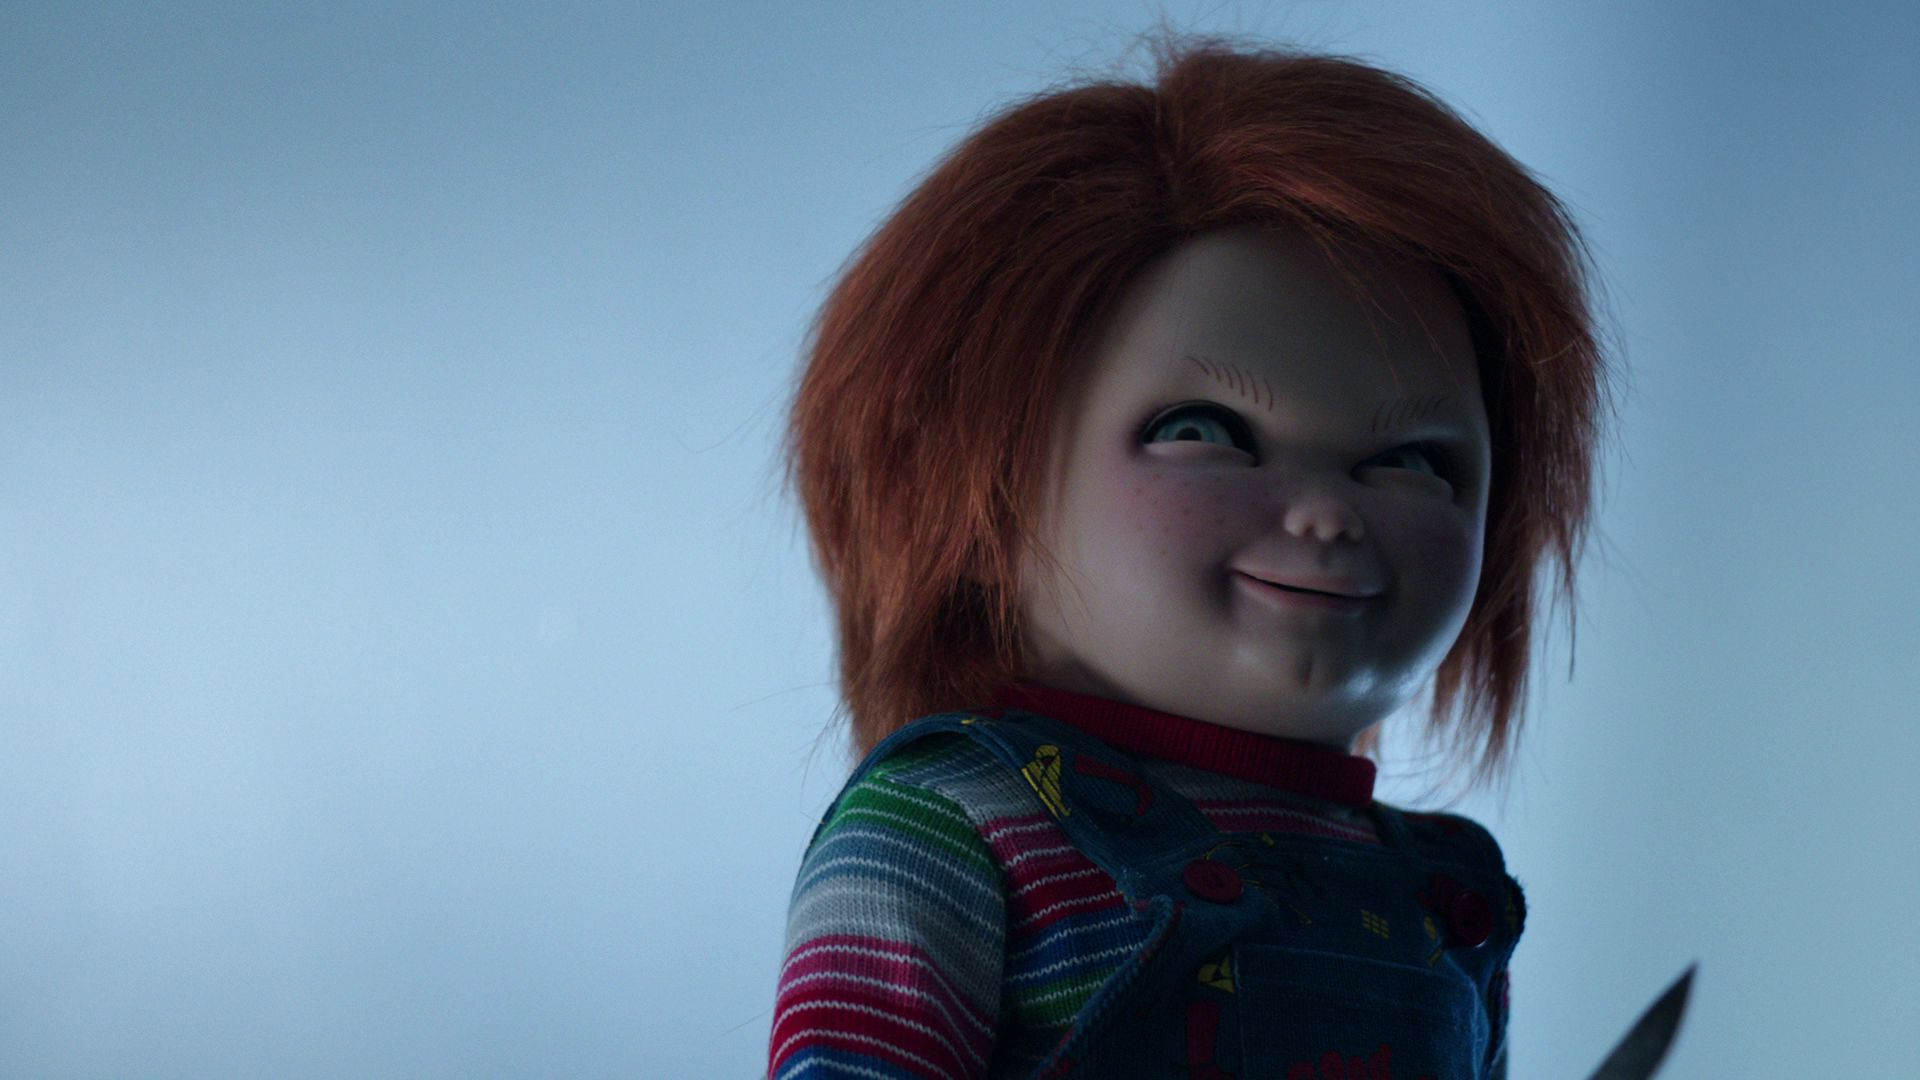 Chucky Doll download free wallpapers for pc in hd